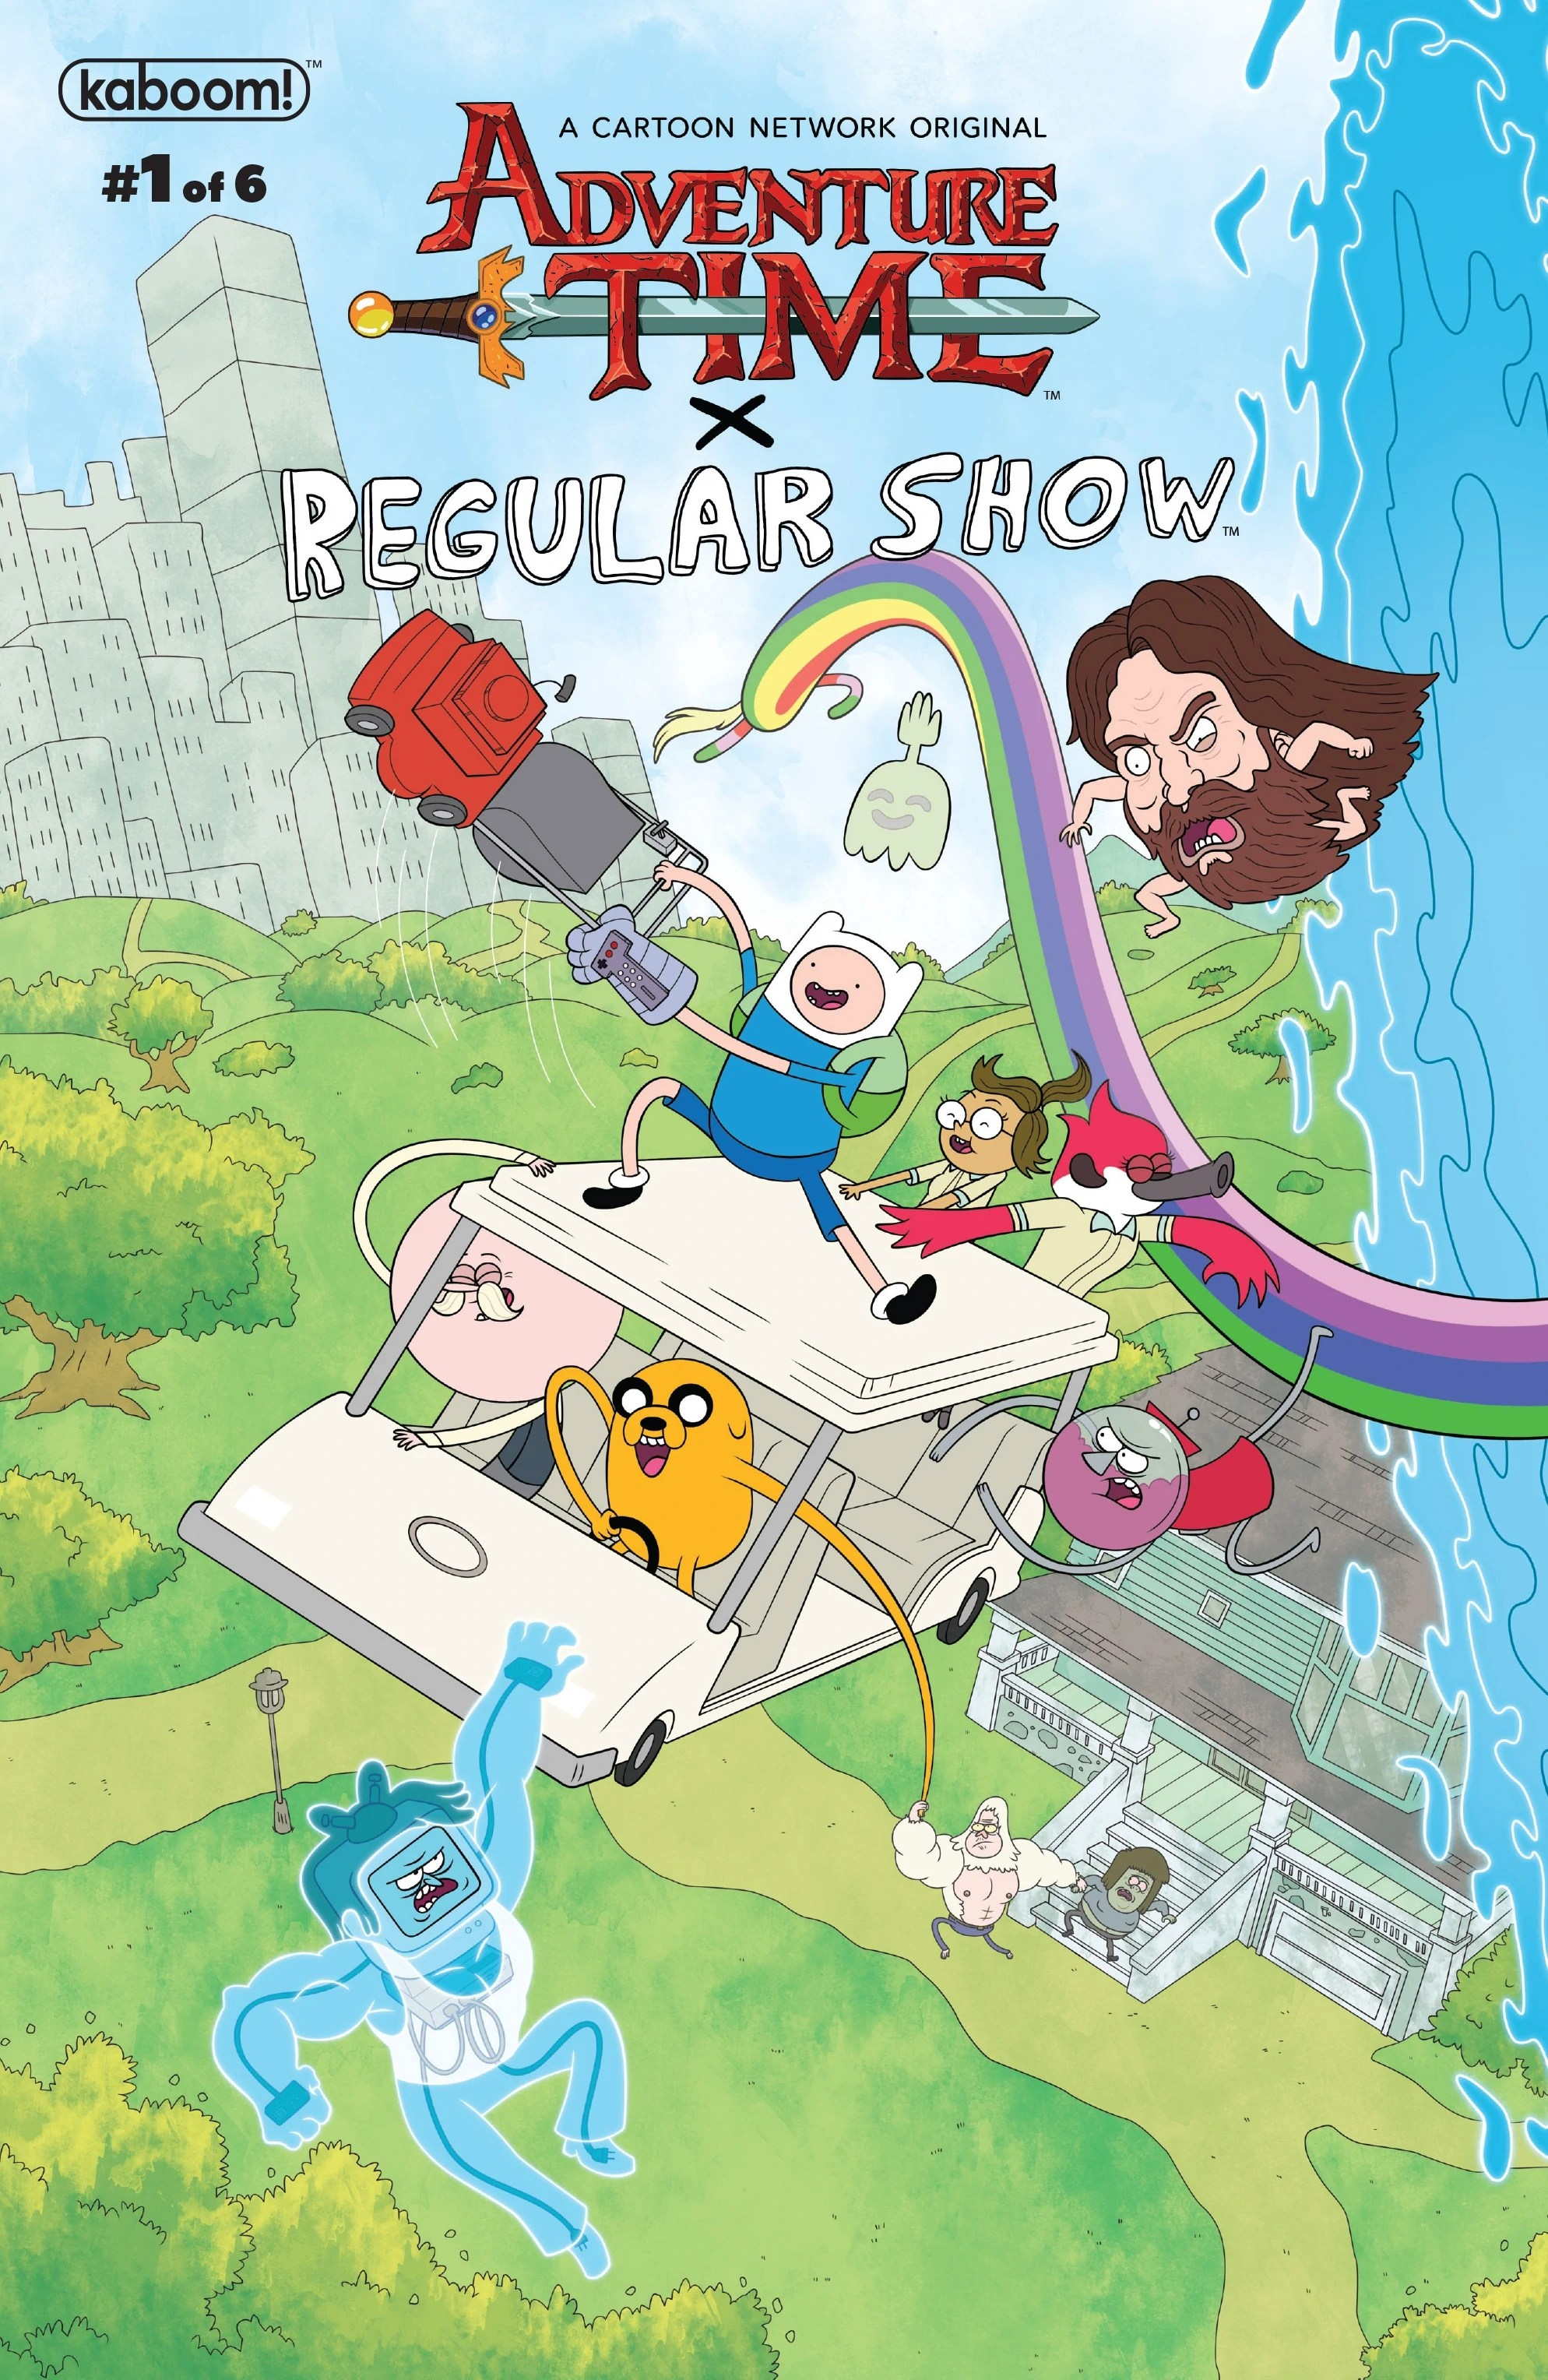 Adventure Time Regular Show Issue 1 Adventure Time Wiki